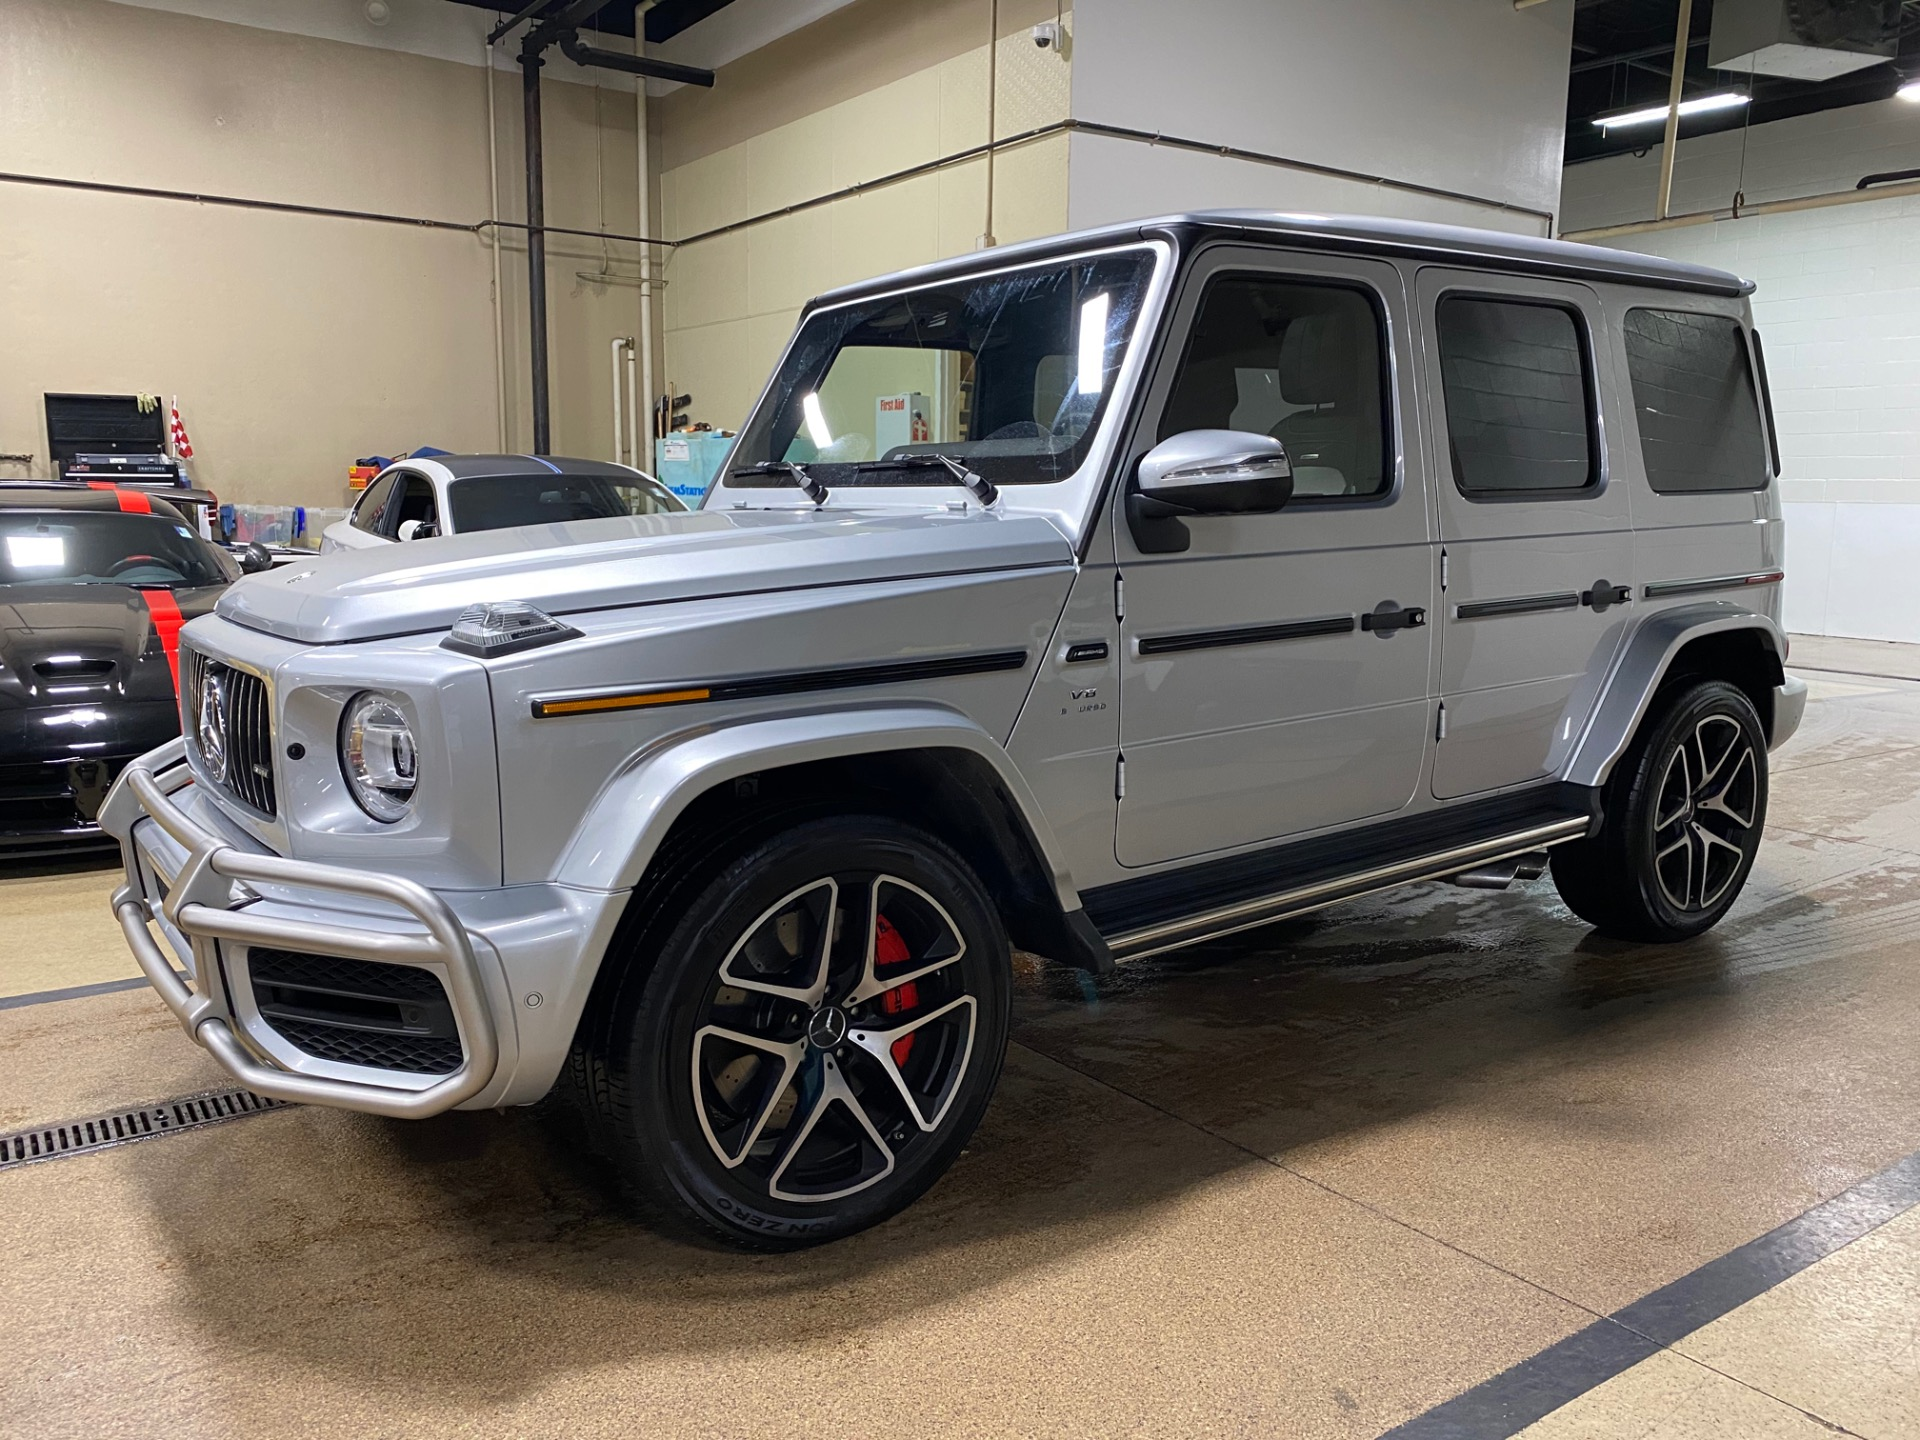 Used 2019 Mercedes Benz G Class G63 Amg 4 Matic Suv Only 5 700 Miles Elegant Color Combination For Sale Special Pricing Chicago Motor Cars Stock 16847